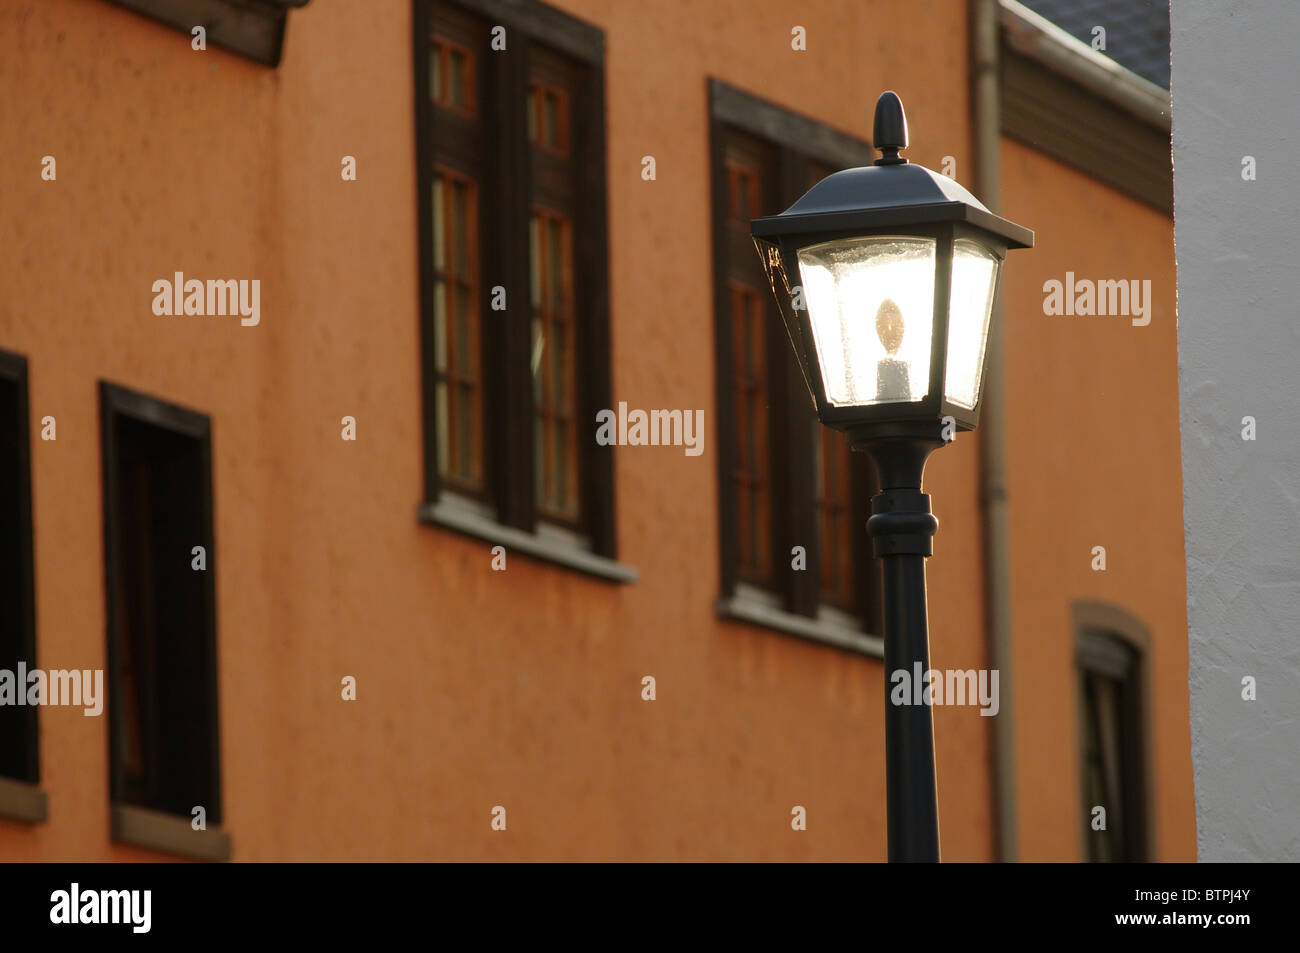 Germany, Hesse, Limburg an der Lahn, Old Fashioned street light - Stock Image